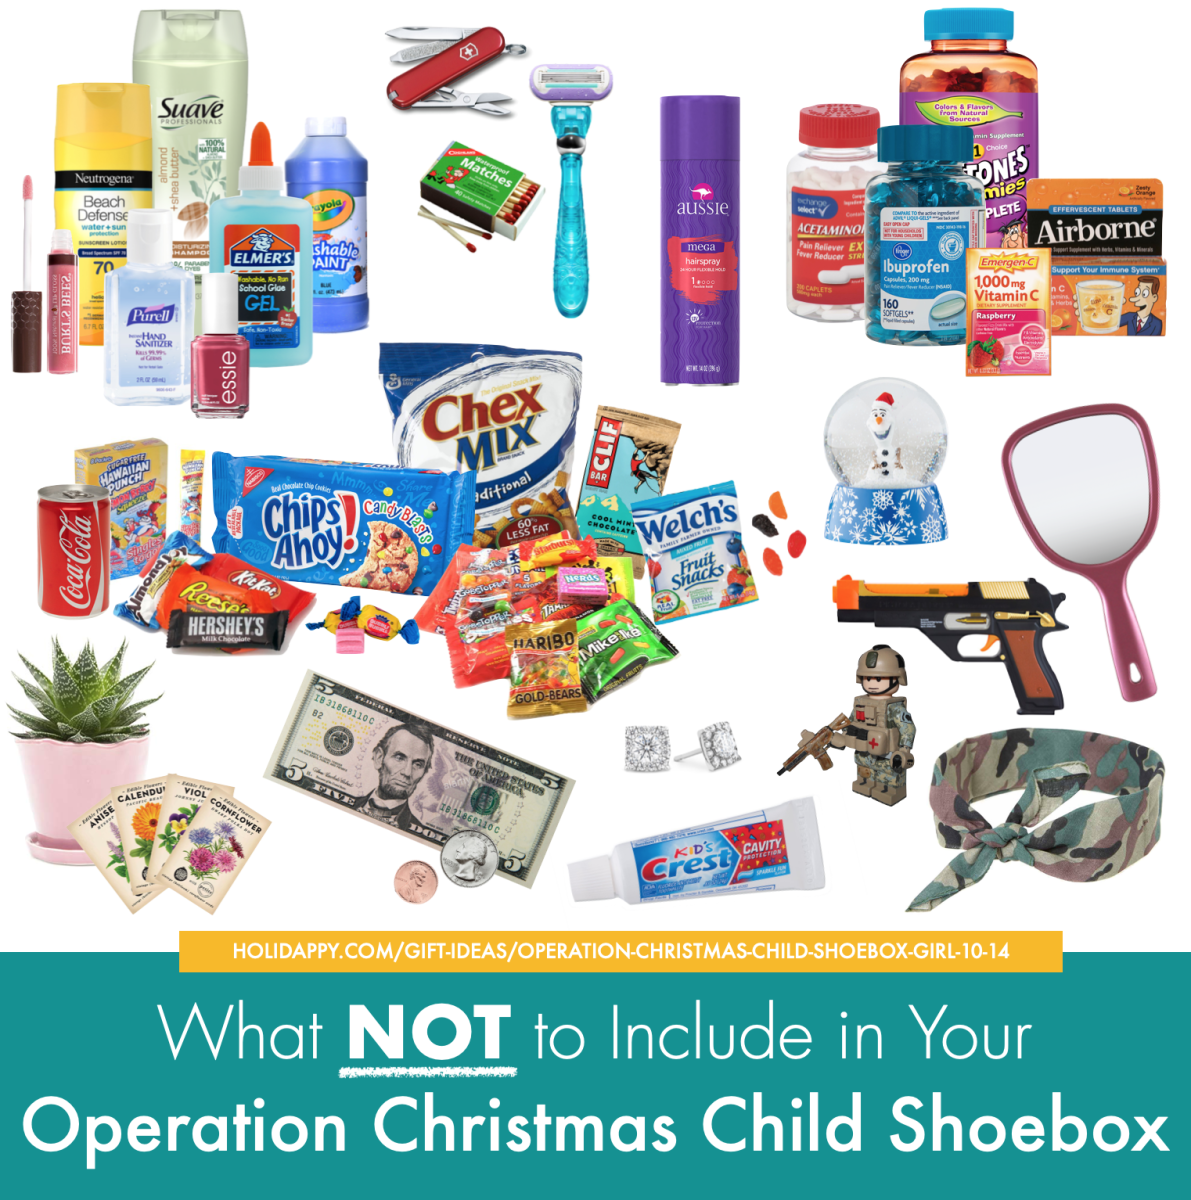 What NOT to include in an Operation Christmas Child Shoebox. From candy to toothpaste, customs regulations limit what you can send overseas.